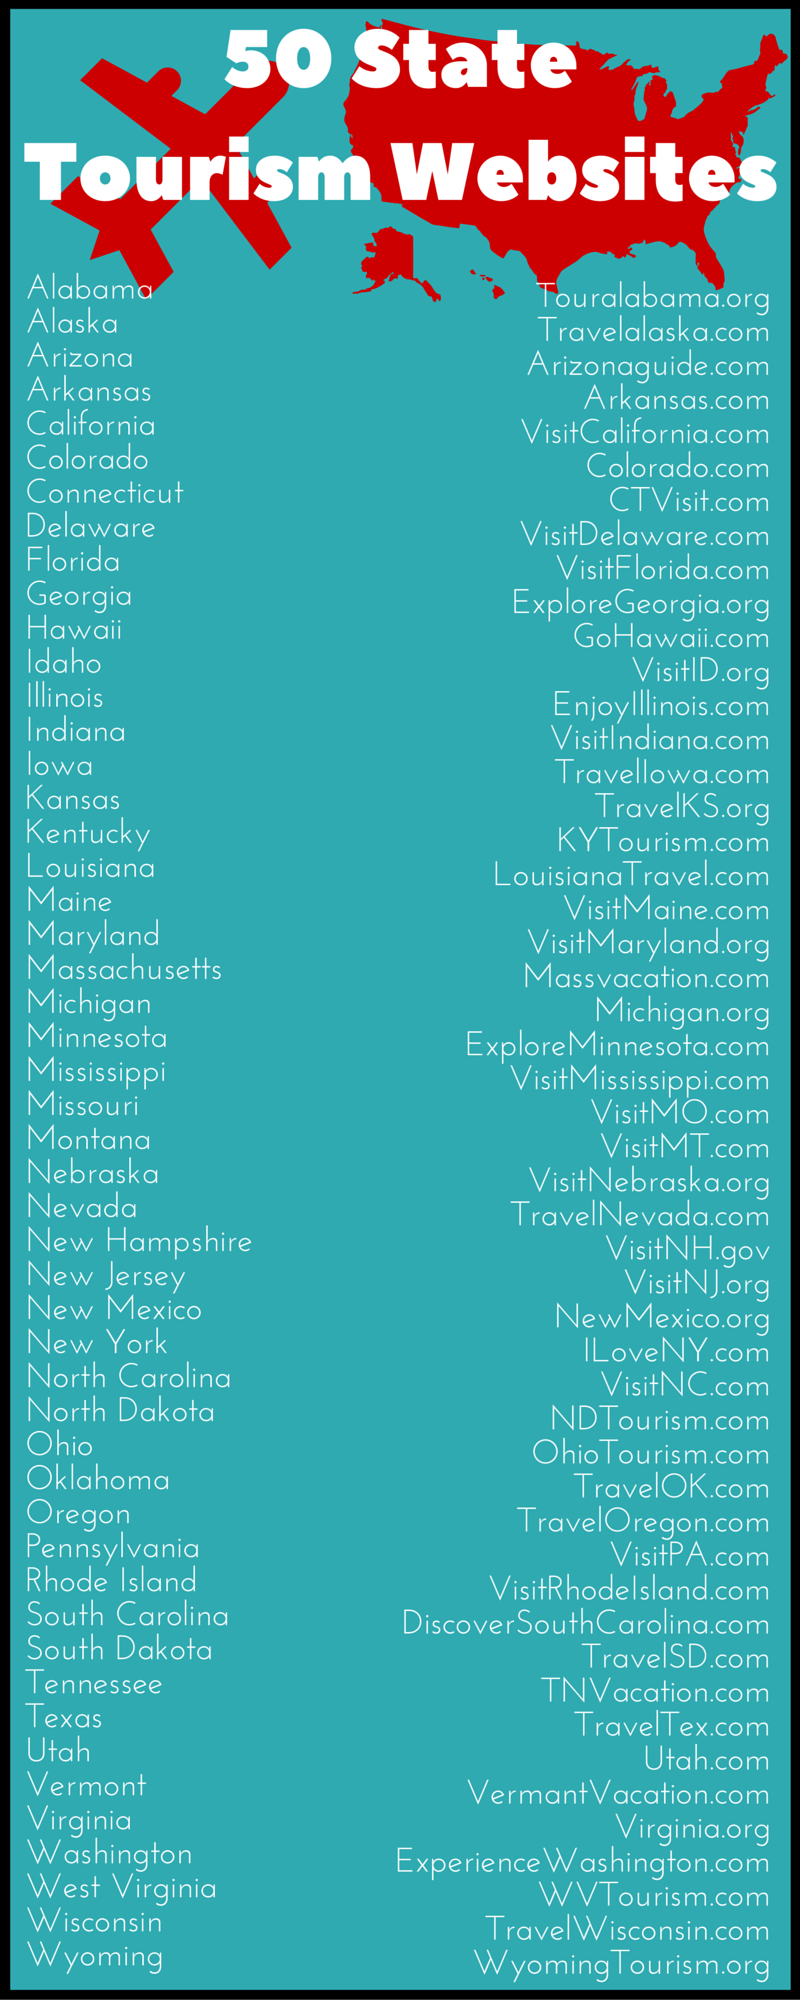 List of the 50 State Visitor's Bureaus or Tourism Websites